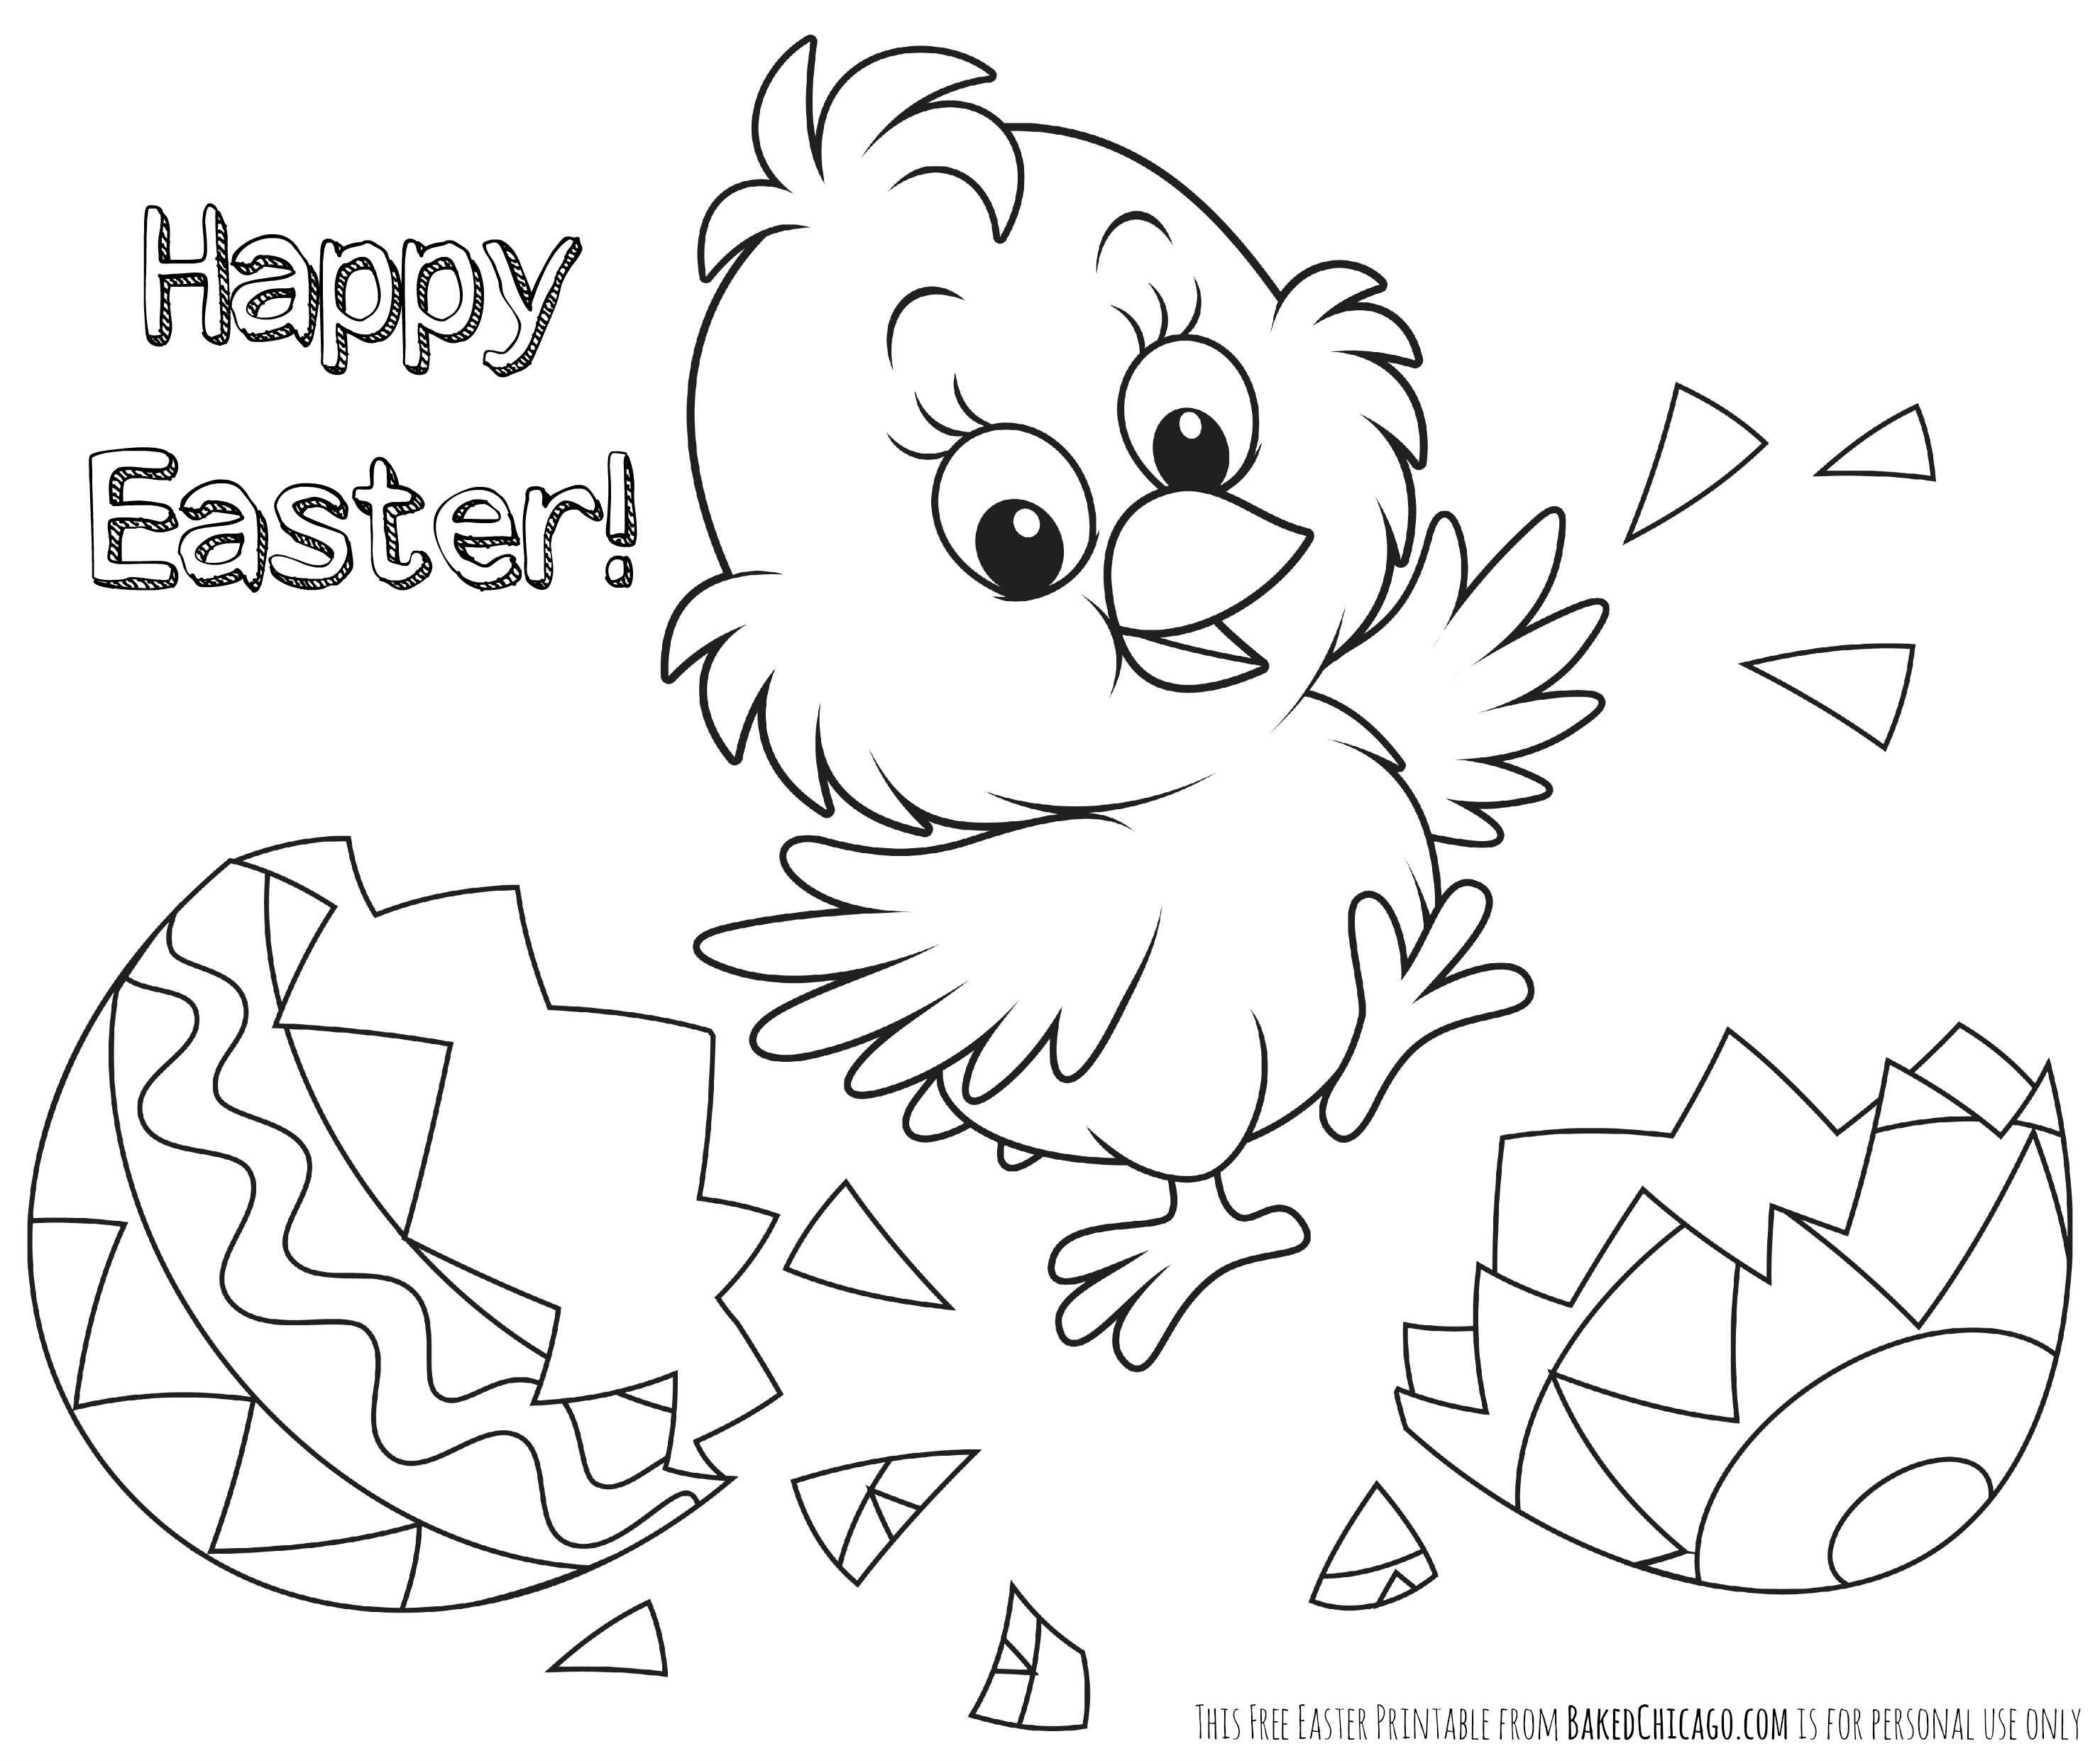 Easter Coloring Pages Printable Bloodbrothers Me Colouring Sheets - Free Printable Easter Pages